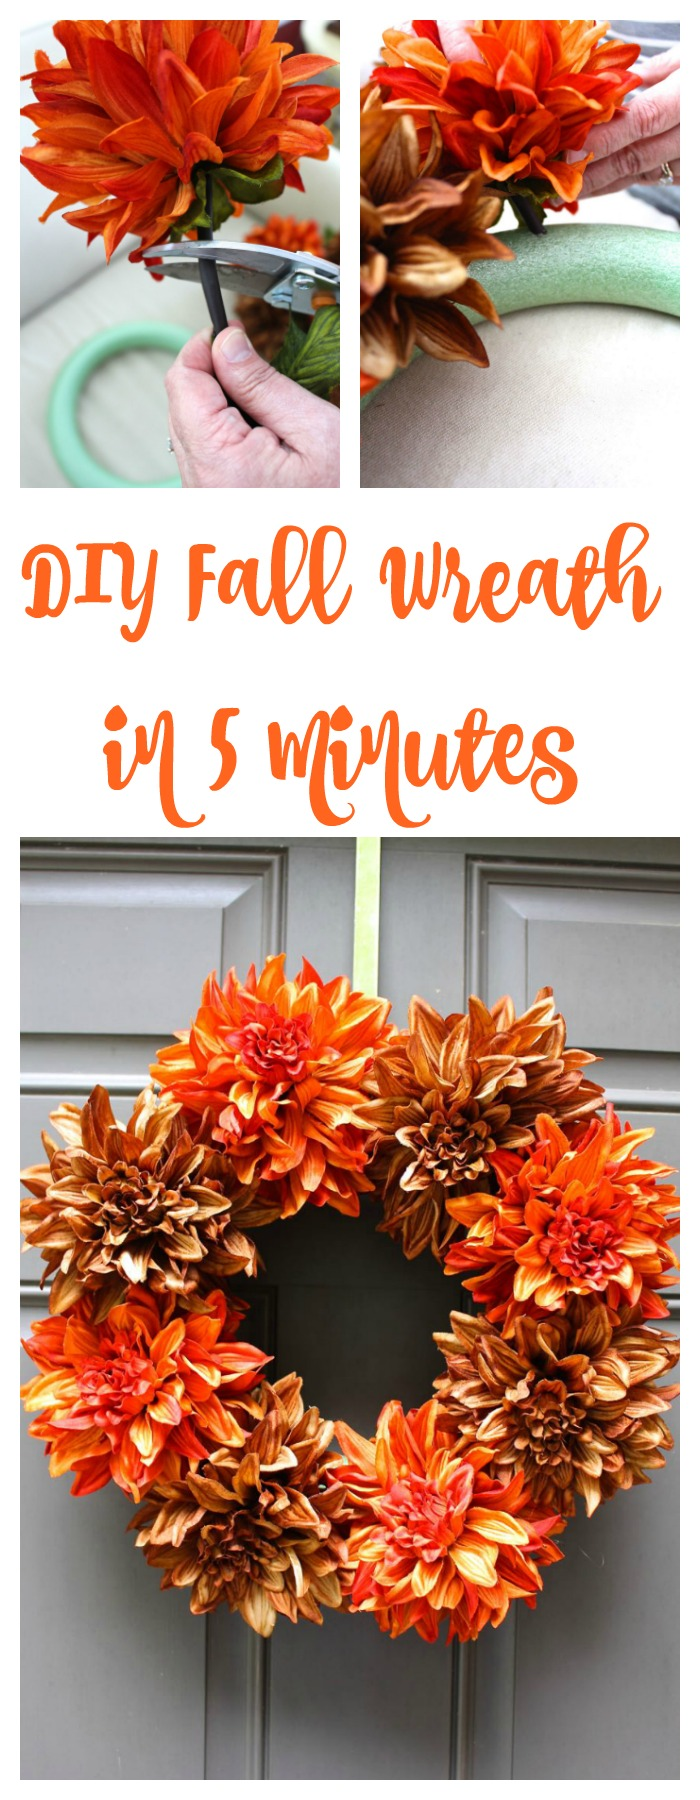 Easy DIY Fall Wreath in 5 minutes